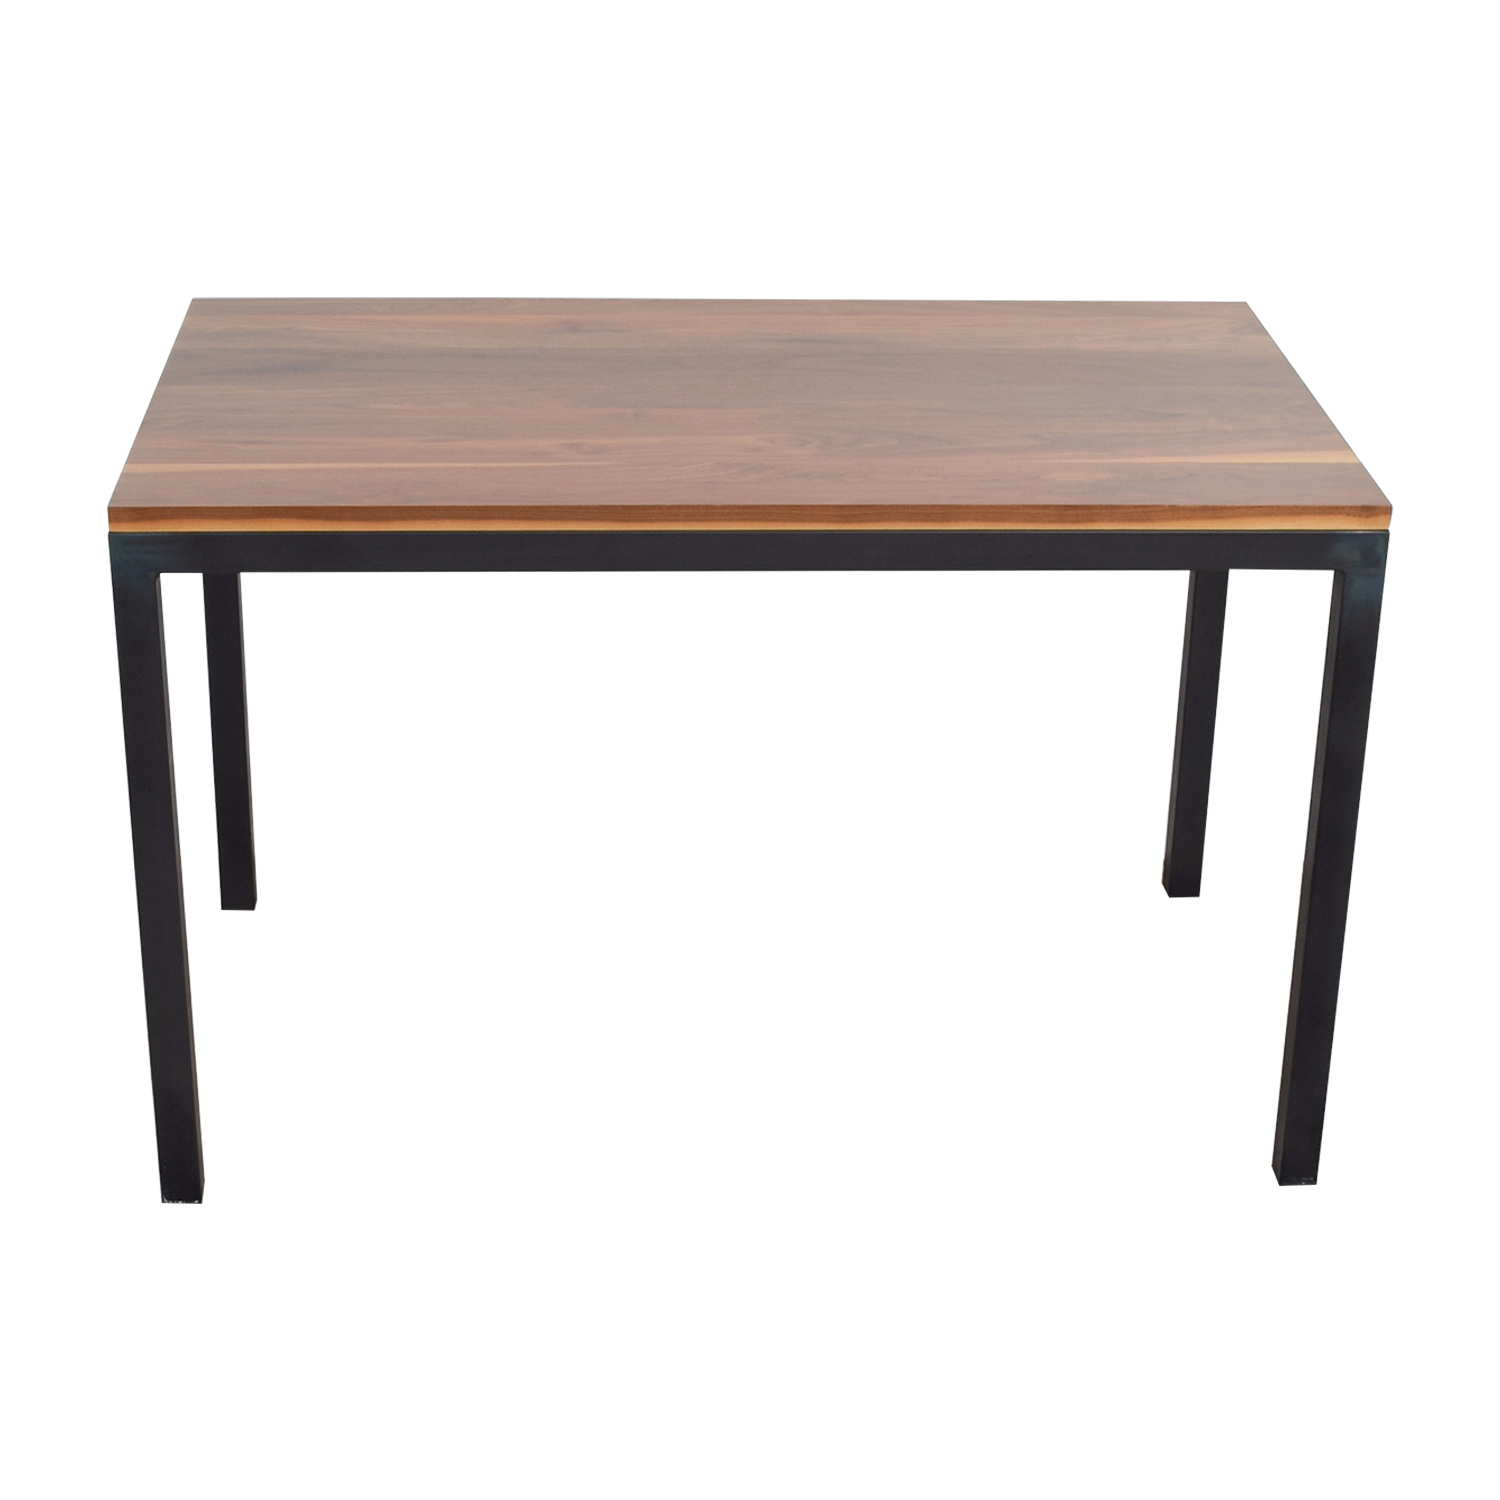 Room & Board Room & Board Counter-Height Custom Parsons Dining Table on sale